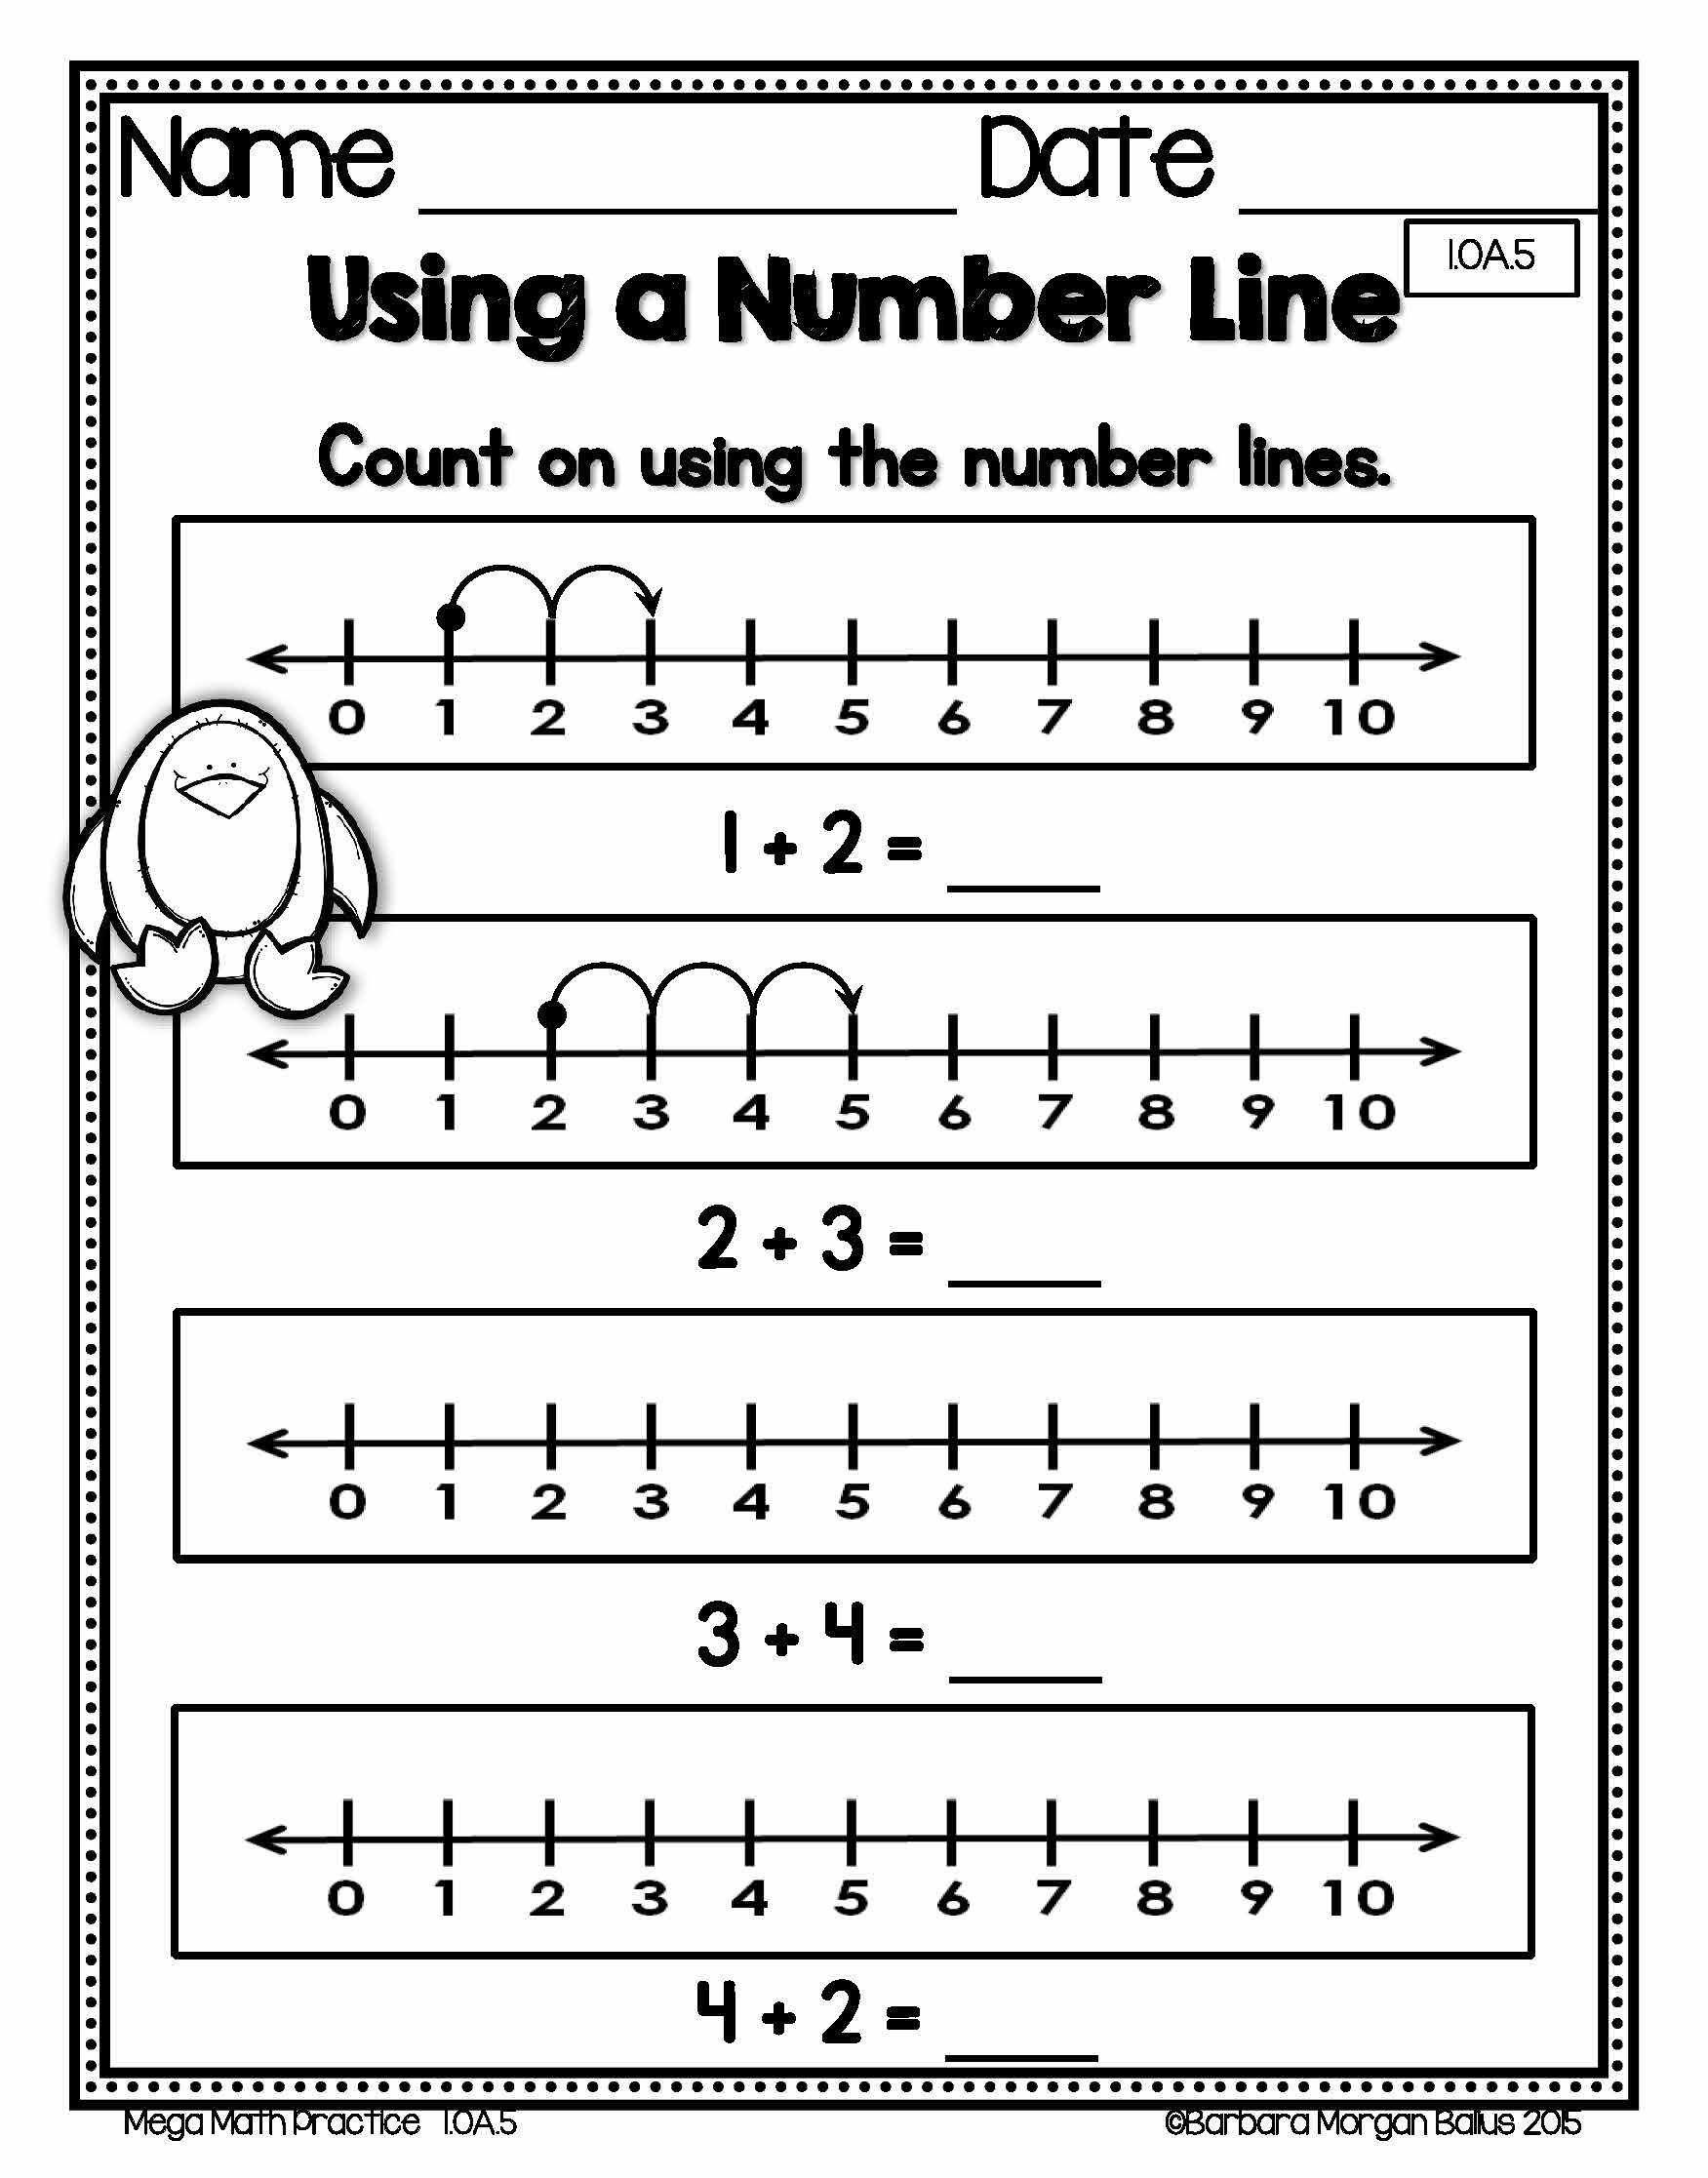 86 Free Number Line Worksheets For Grade 1 Printable